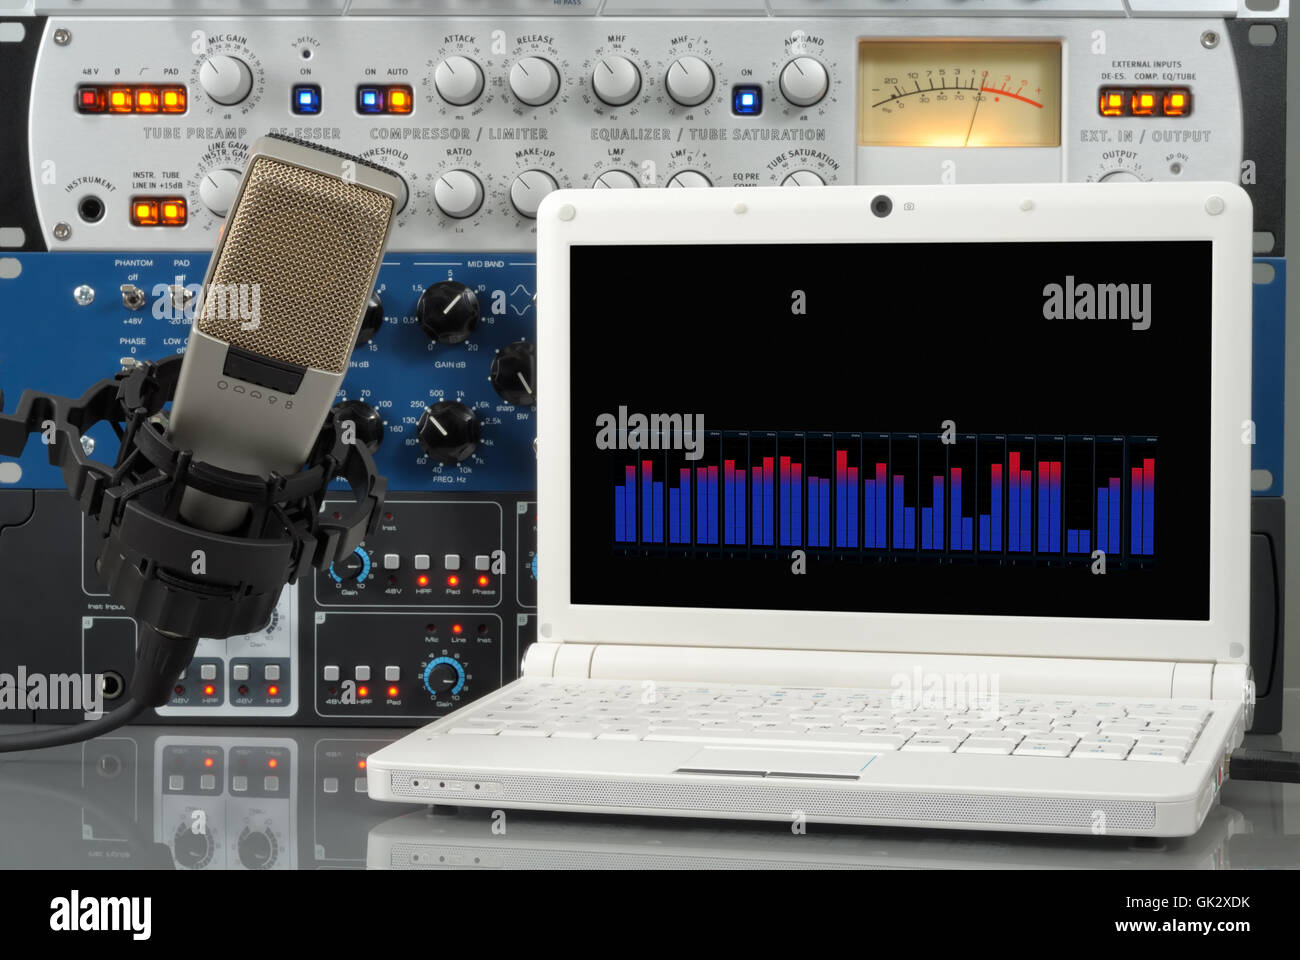 audio setup in the digital studio - Stock Image